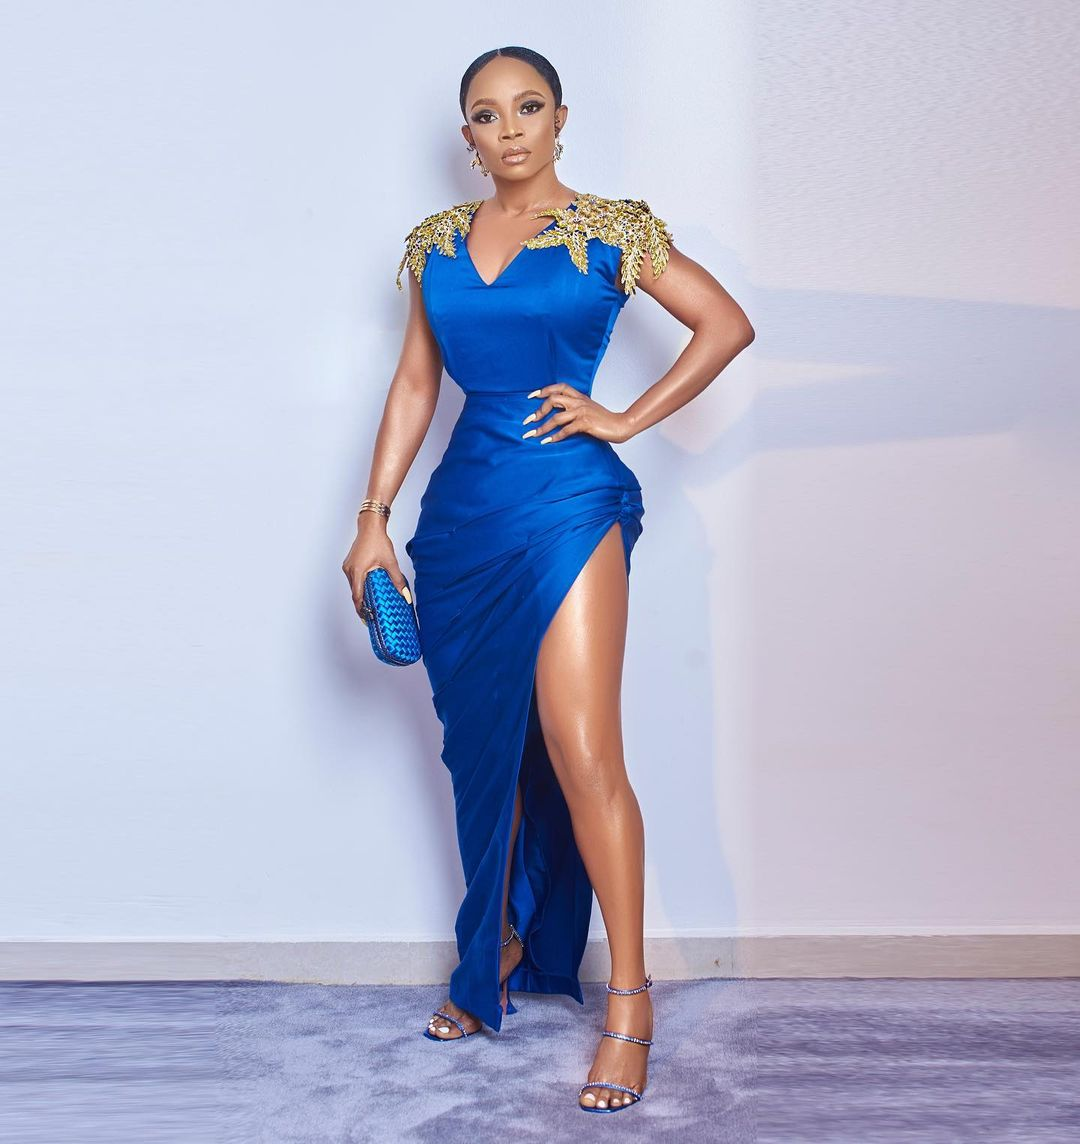 TUBO BLUE DRESS WITH GOLD DETAILS